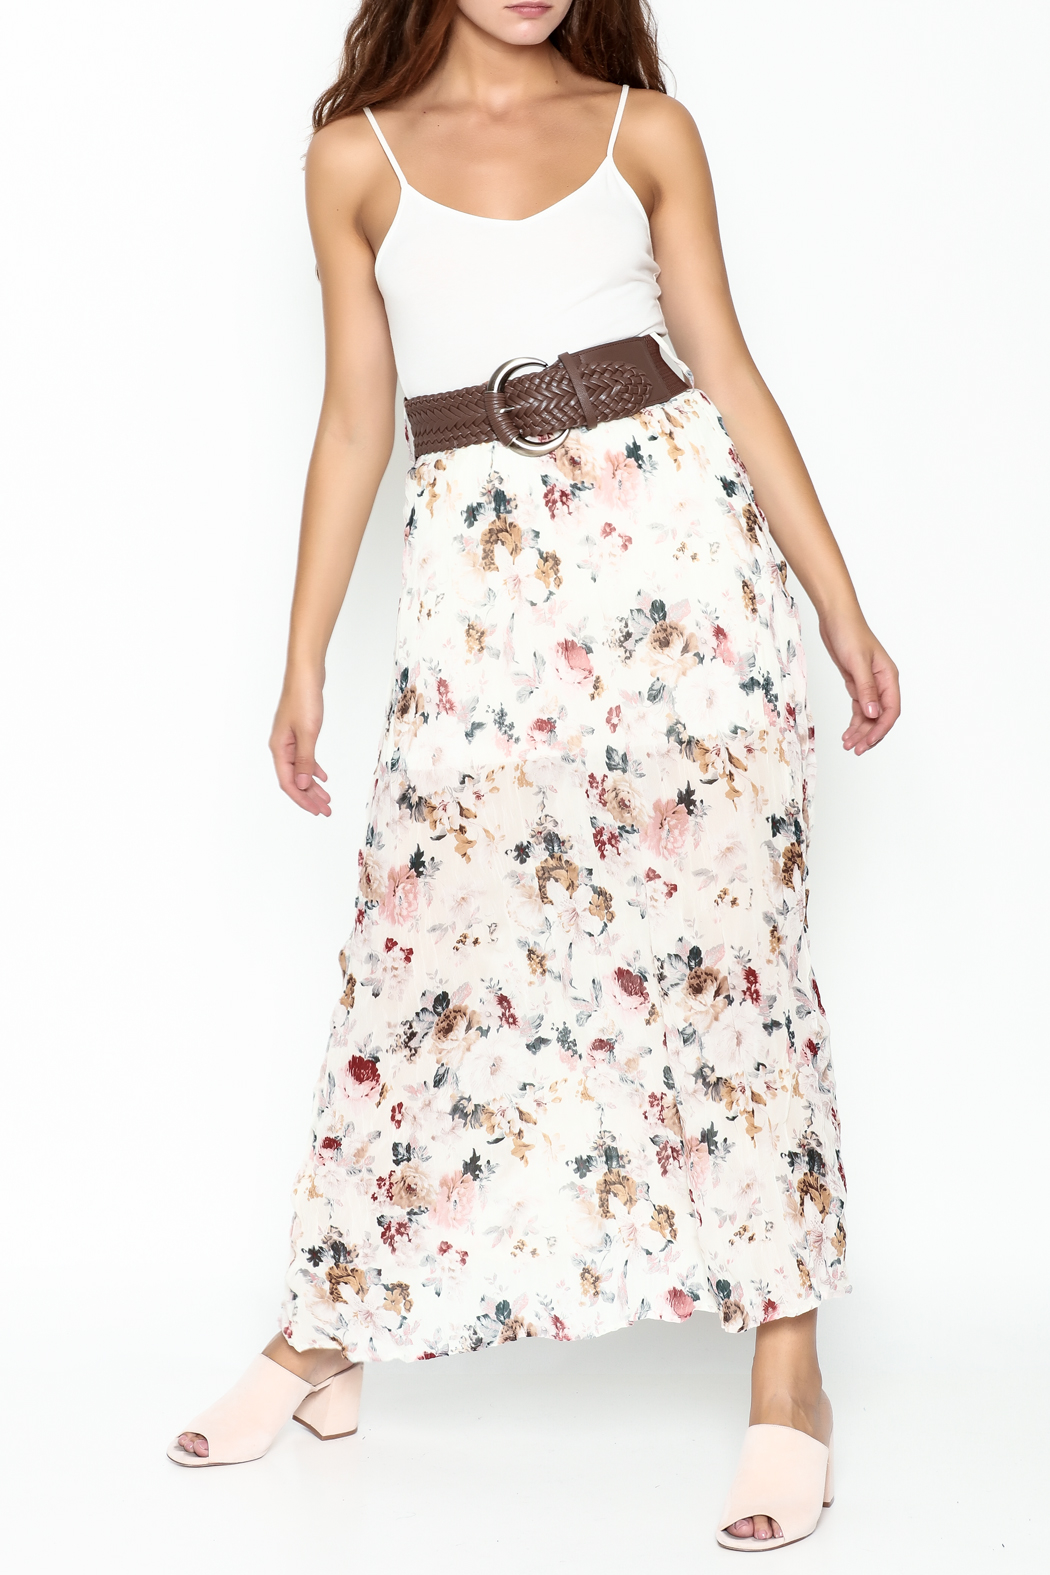 miss avenue  Belted Floral Skirt - Front Cropped Image